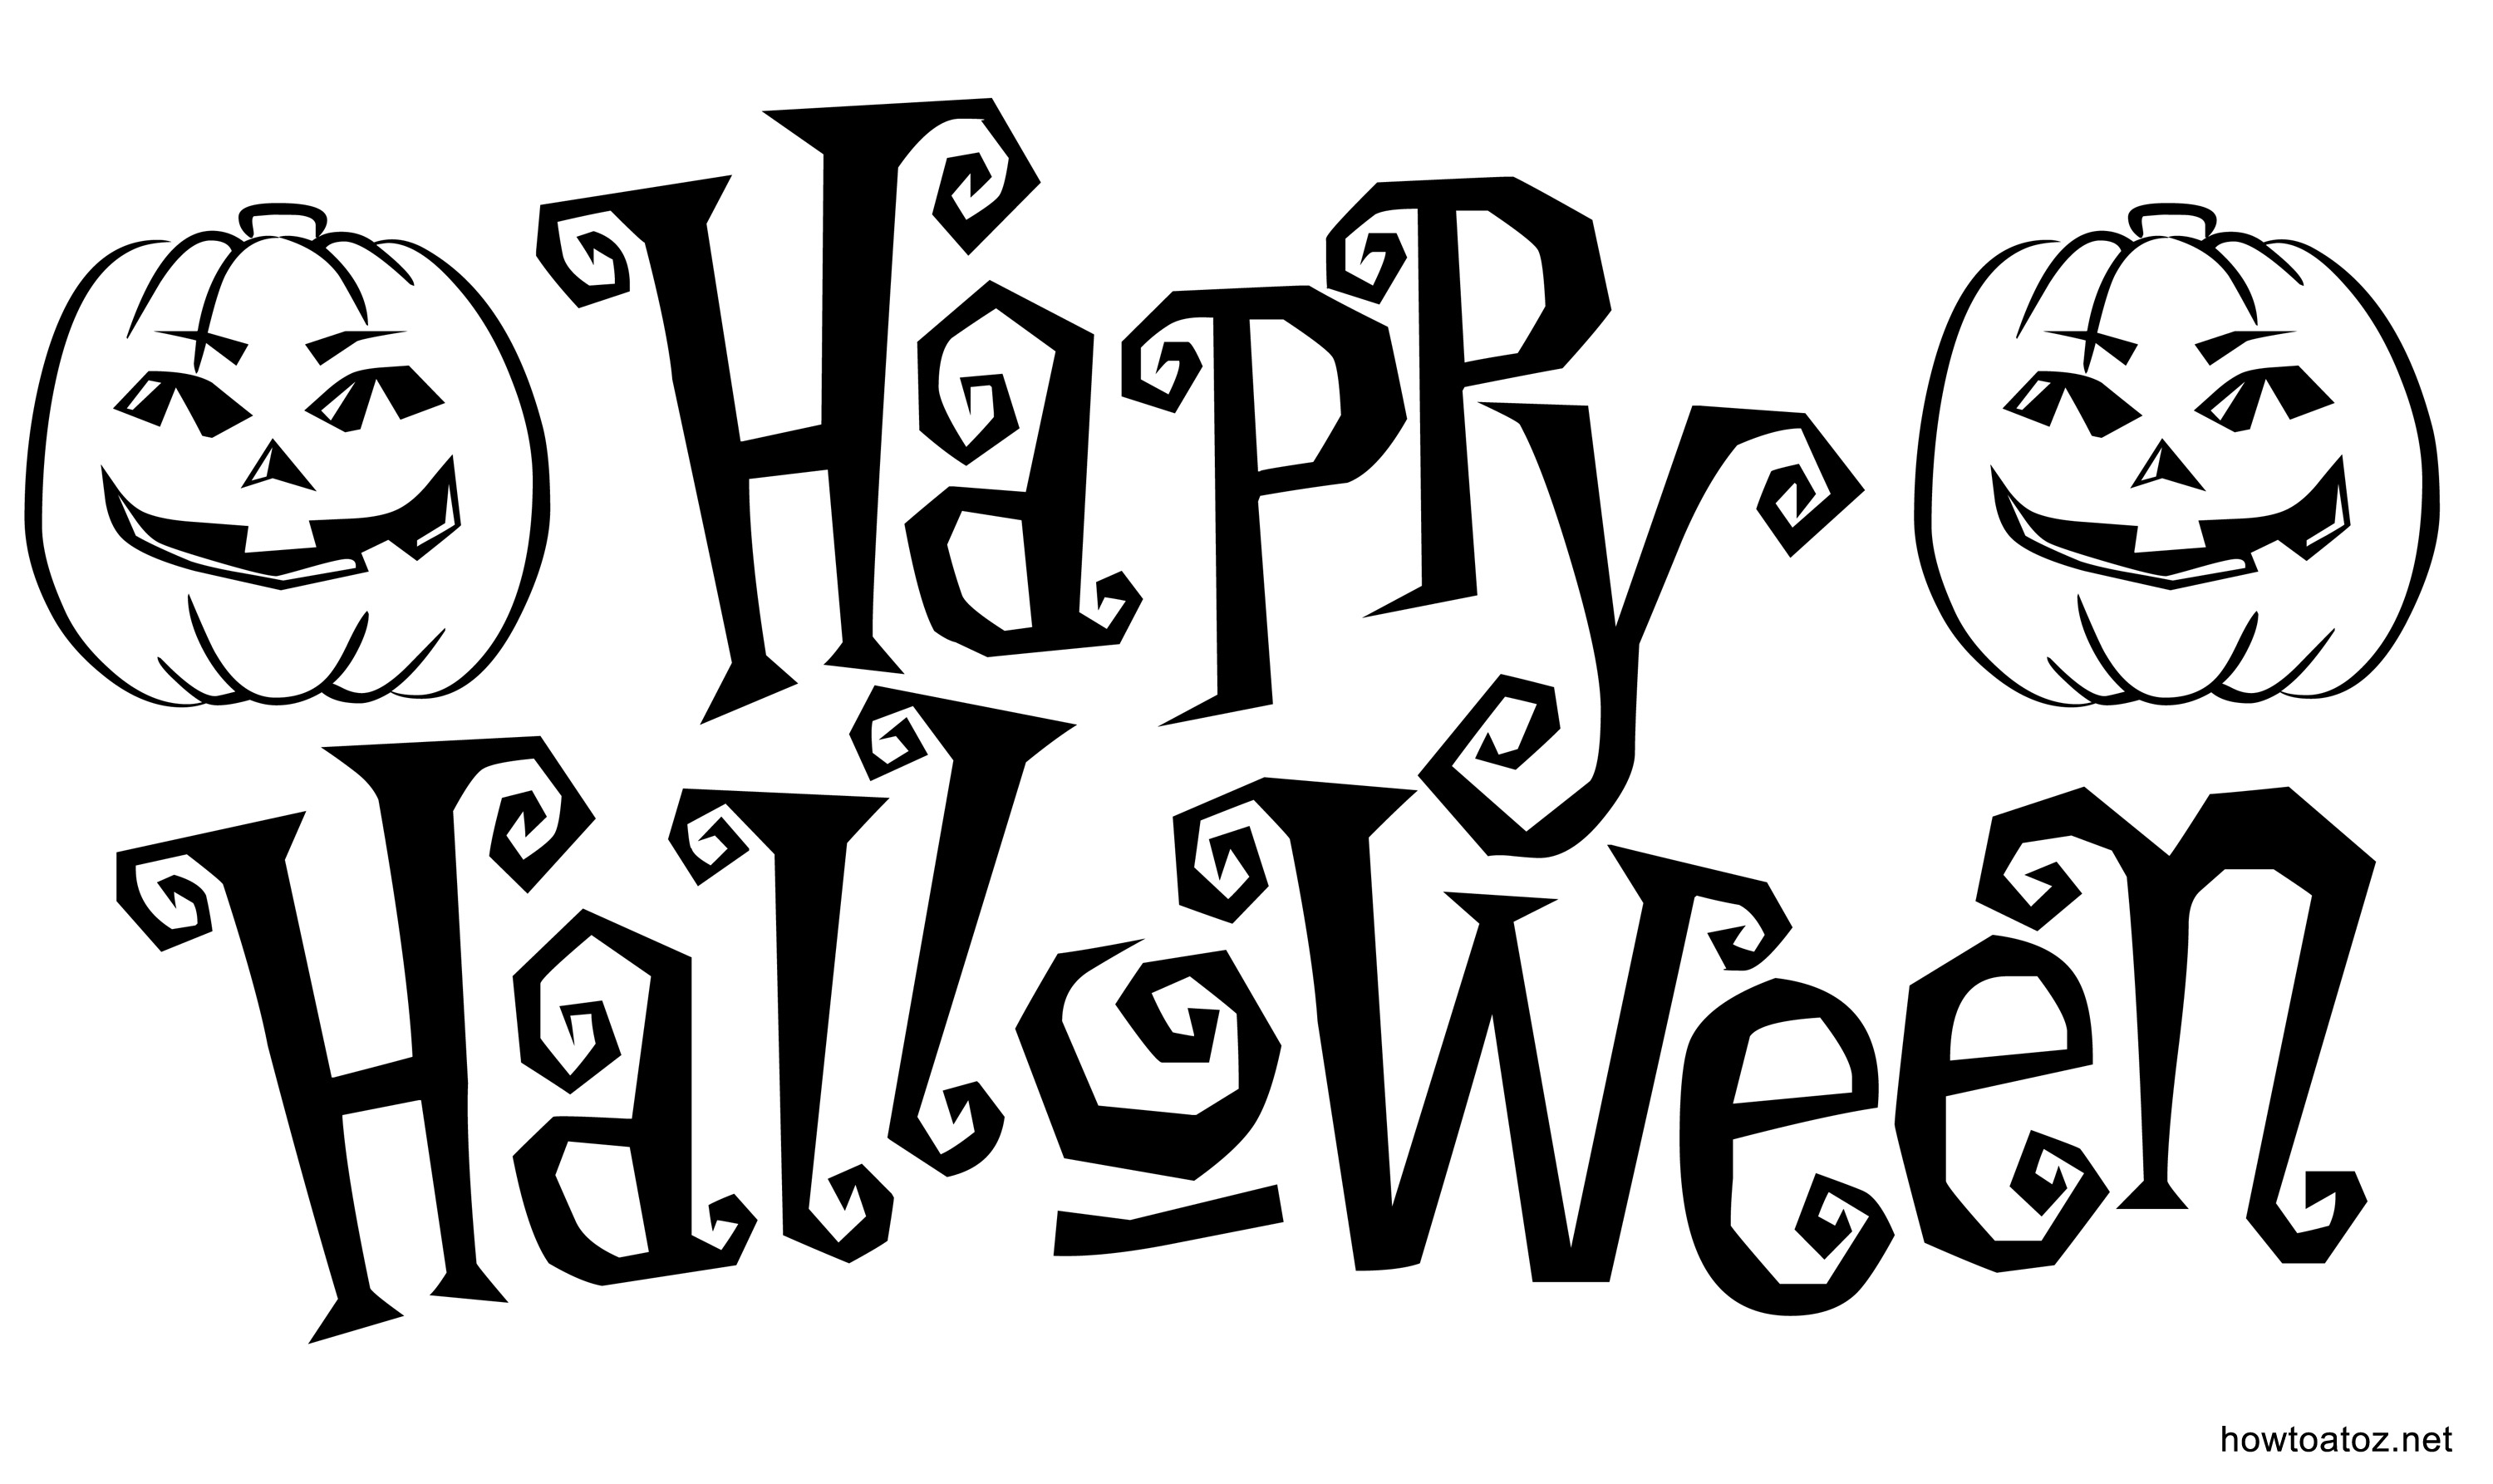 Free Halloween decoration Stencils And Templates - How to A to Z